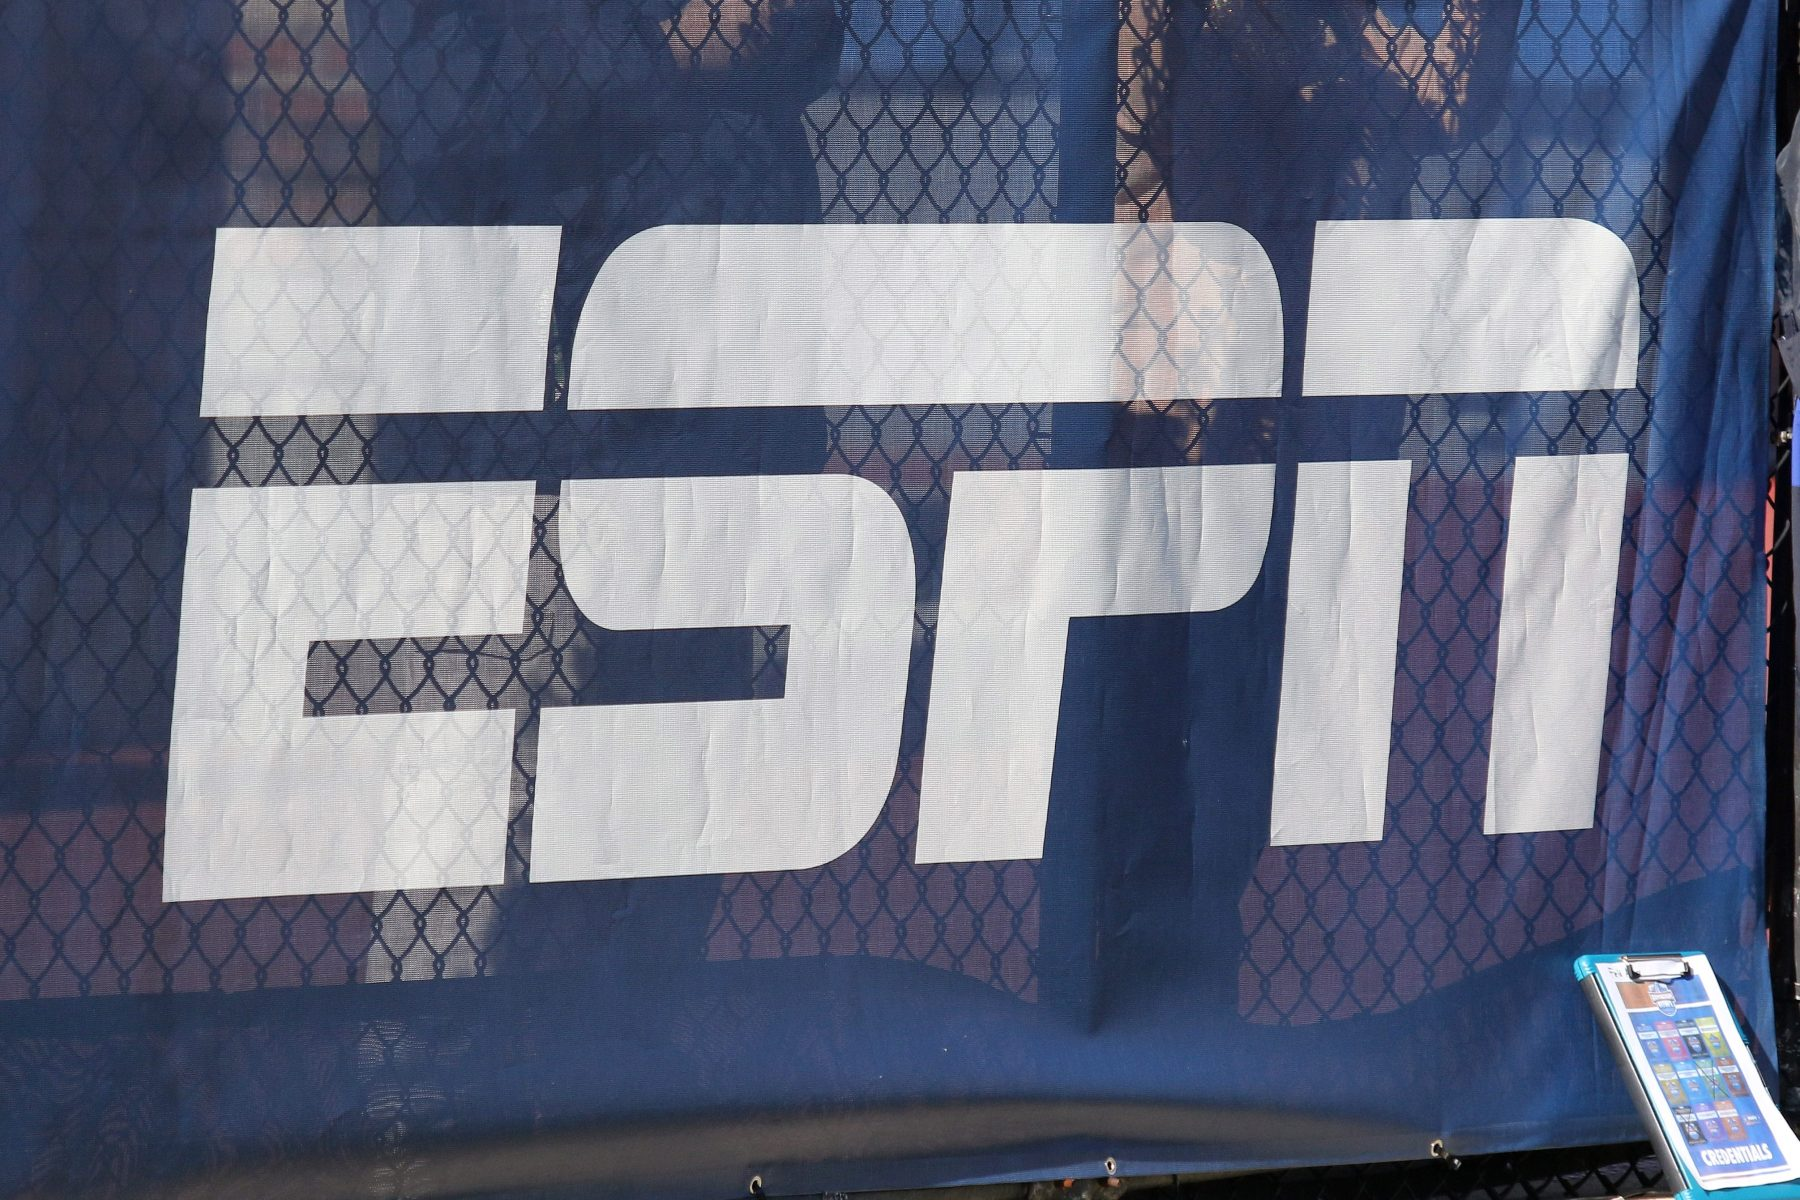 The ESPN logo on display at the Birmingham Bowl in 2018